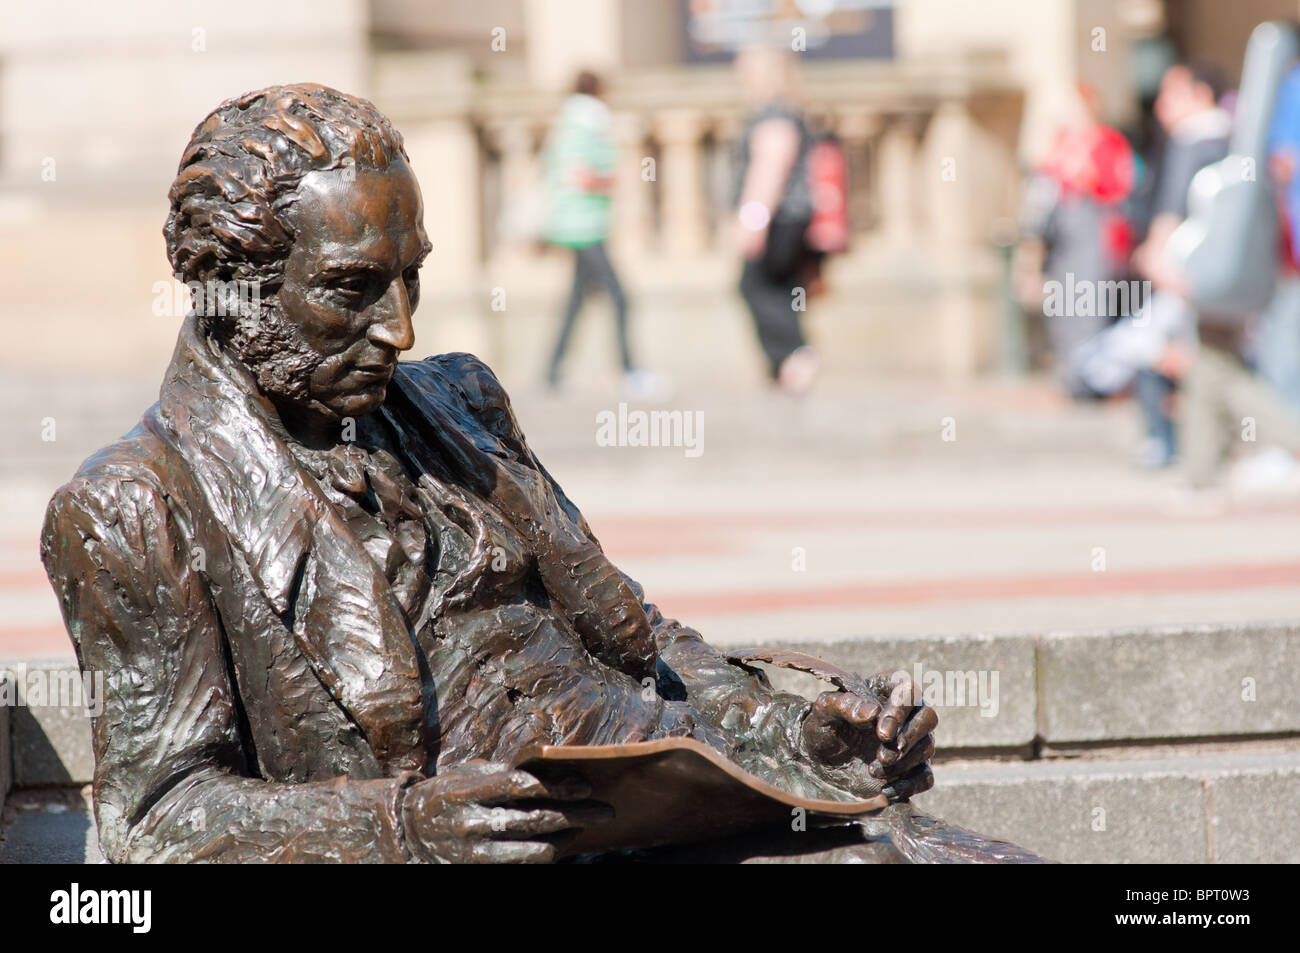 Statue of Thomas Attwood (economist and strong campaigner for electoral reform) seen in Chamberlain Square, Birmingham, - Stock Image